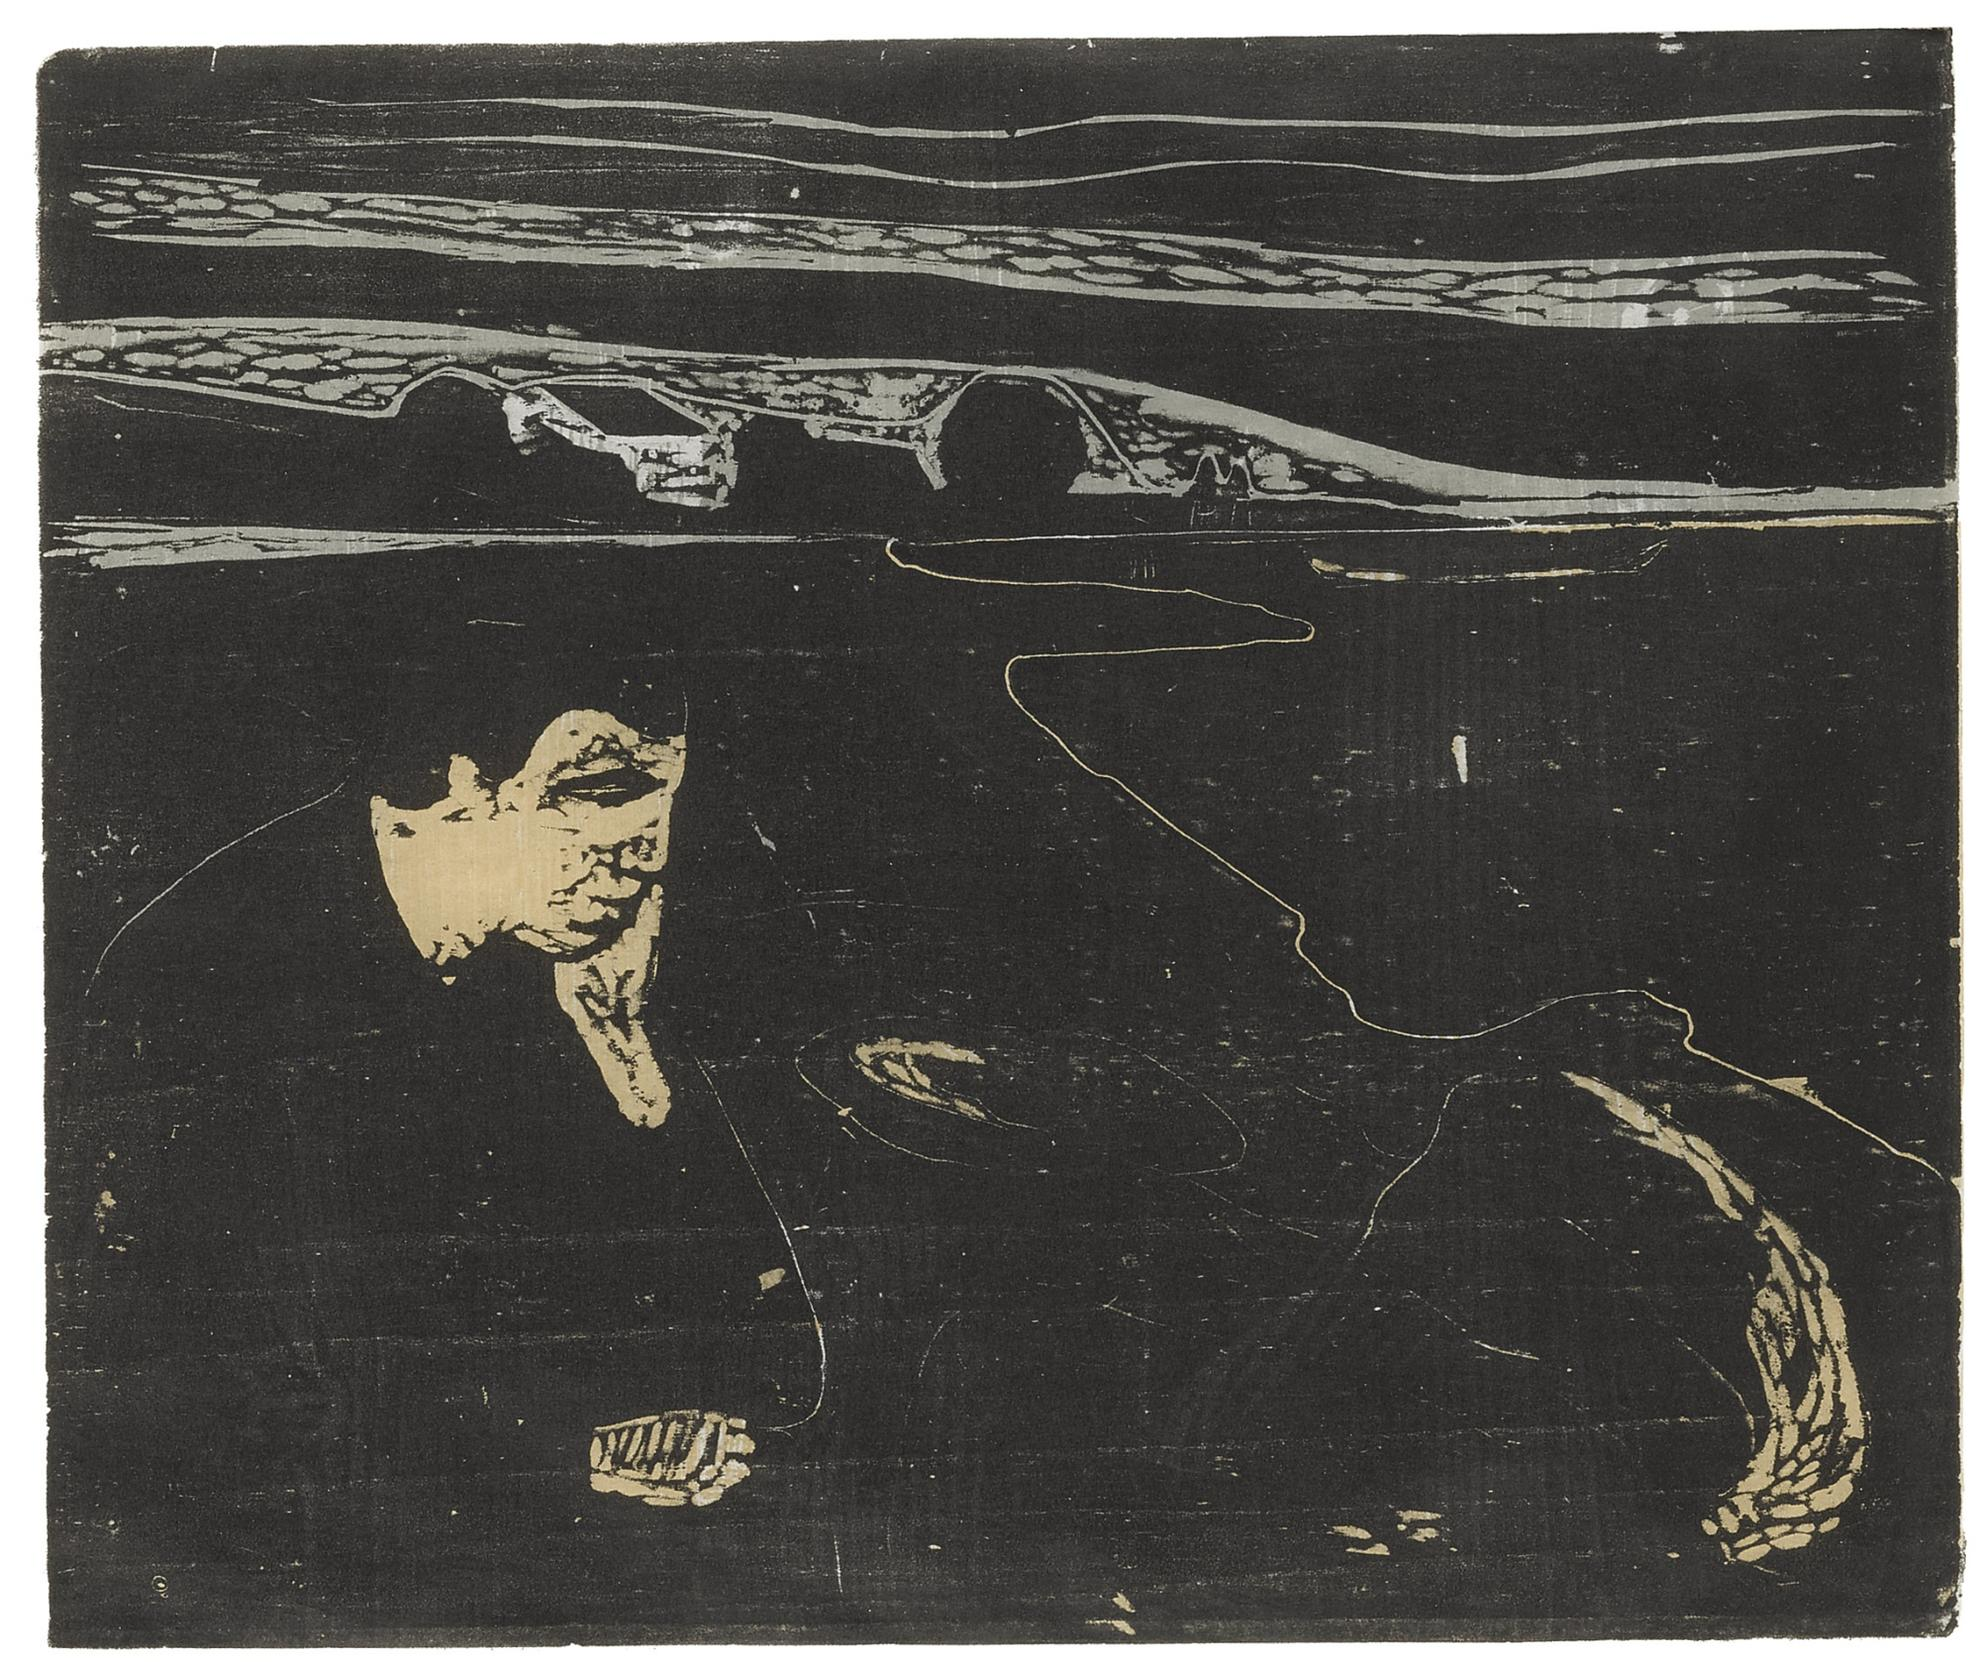 Edvard Munch-Evening. Melancholy I (Sch. 82; W. 91)-1896